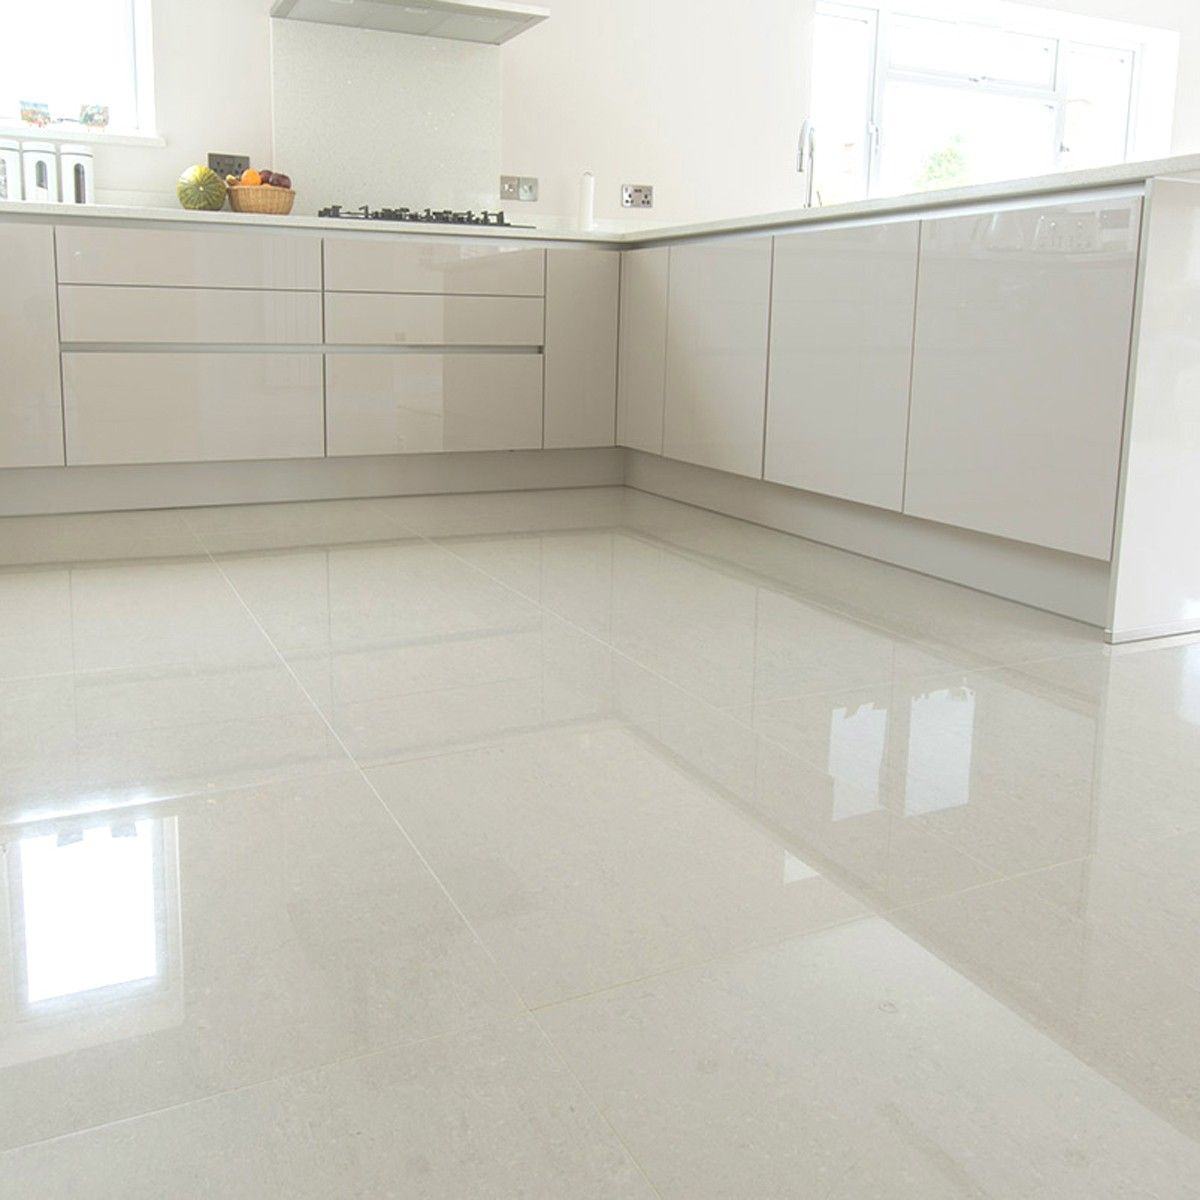 Crown tiles 60x60cm super polished ivory porcelain crown tiles super polished ivory porcelain floor tile is a very contemporary ivory tile does not require sealing dailygadgetfo Image collections